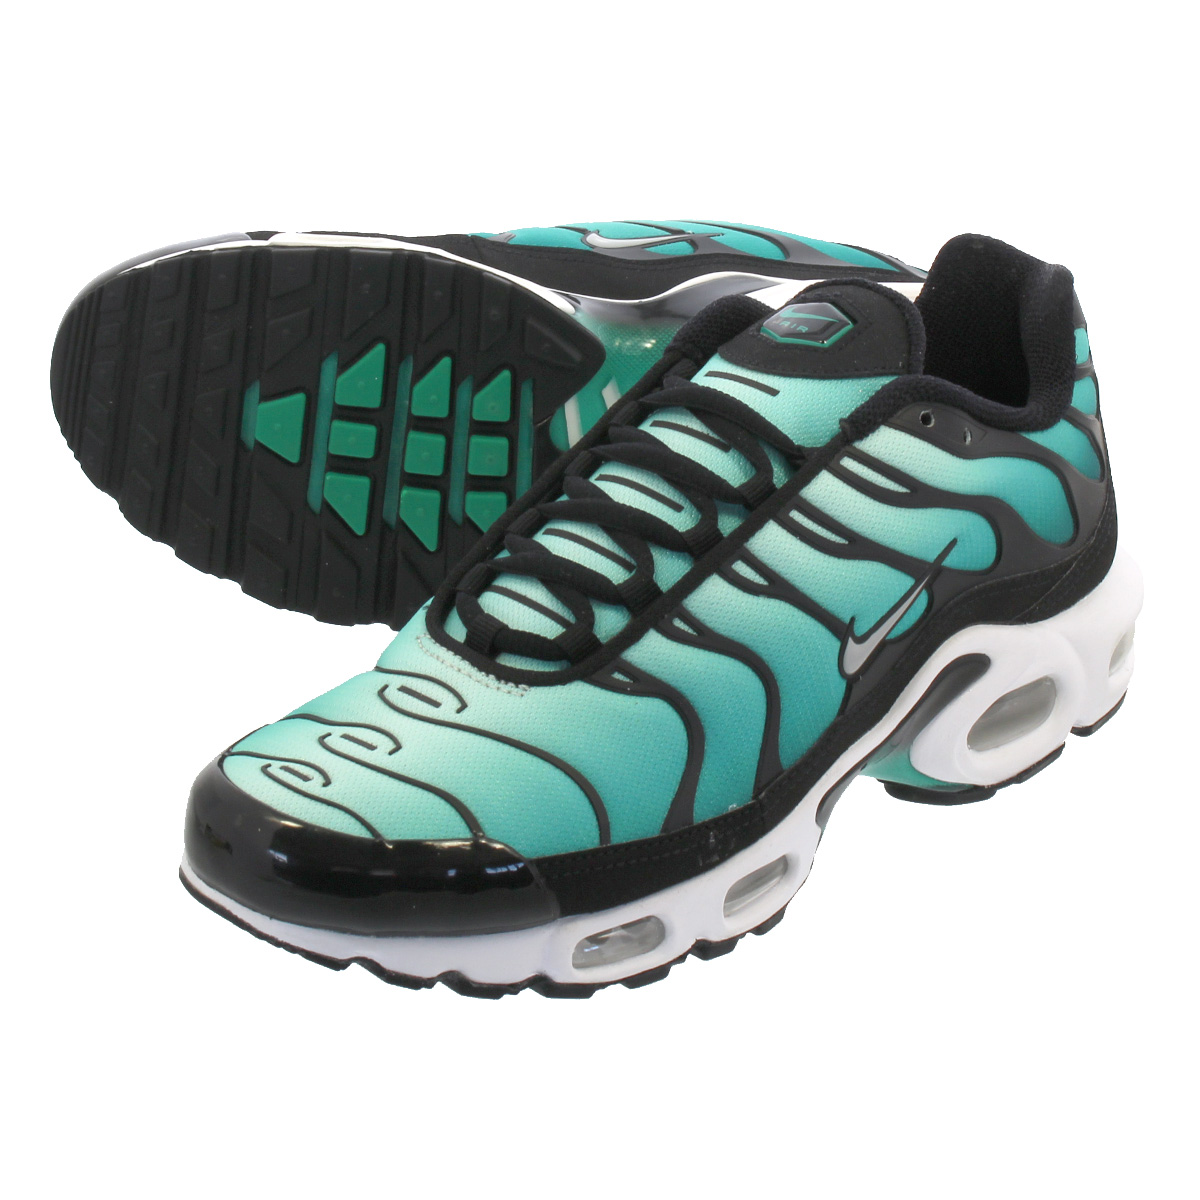 finest selection c2979 73ec1 NIKE WMNS AIR MAX PLUS SE Nike women Air Max plus SE BLACK/METALLIC  PLATINUM/CLEAR EMERALD 862,201-008